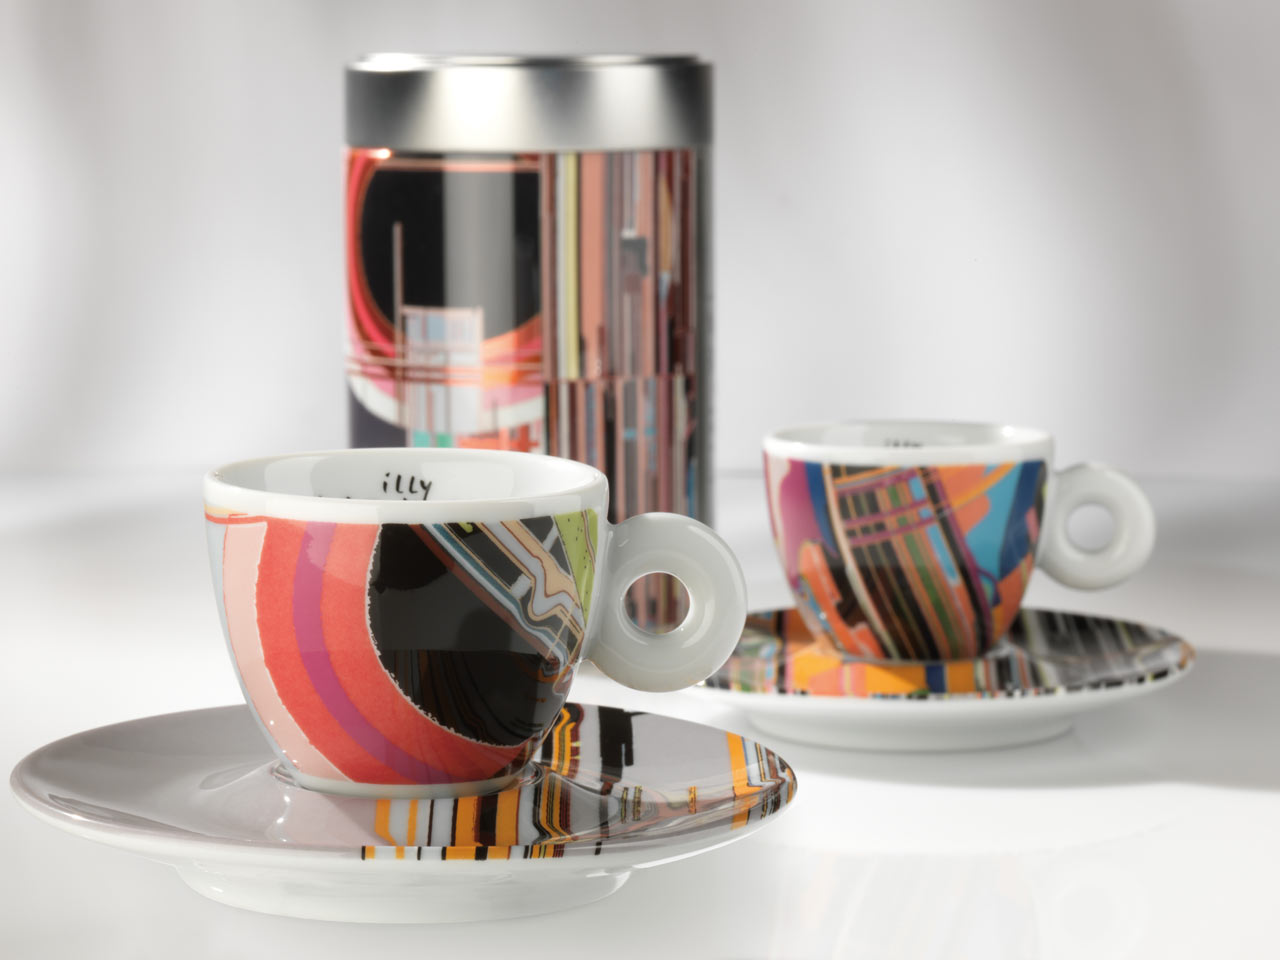 illy-Art-Collection-Project-Liu-Wei-1